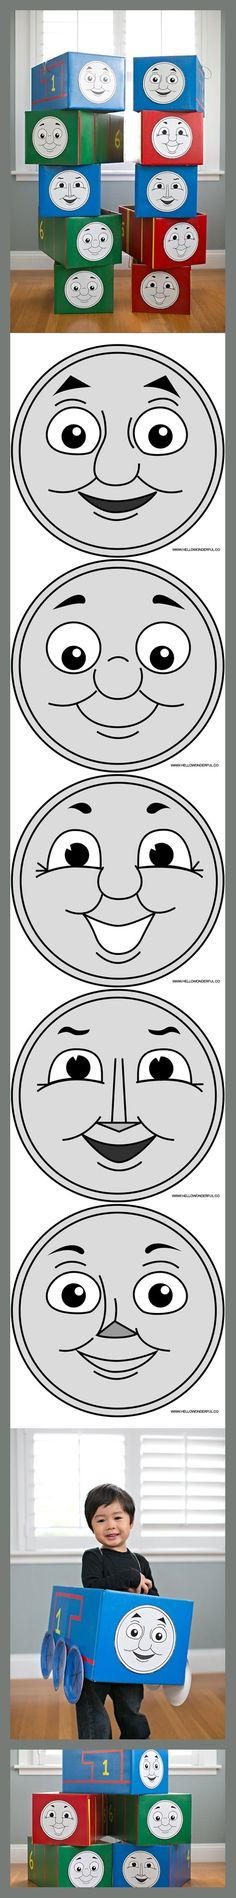 Thomas faces